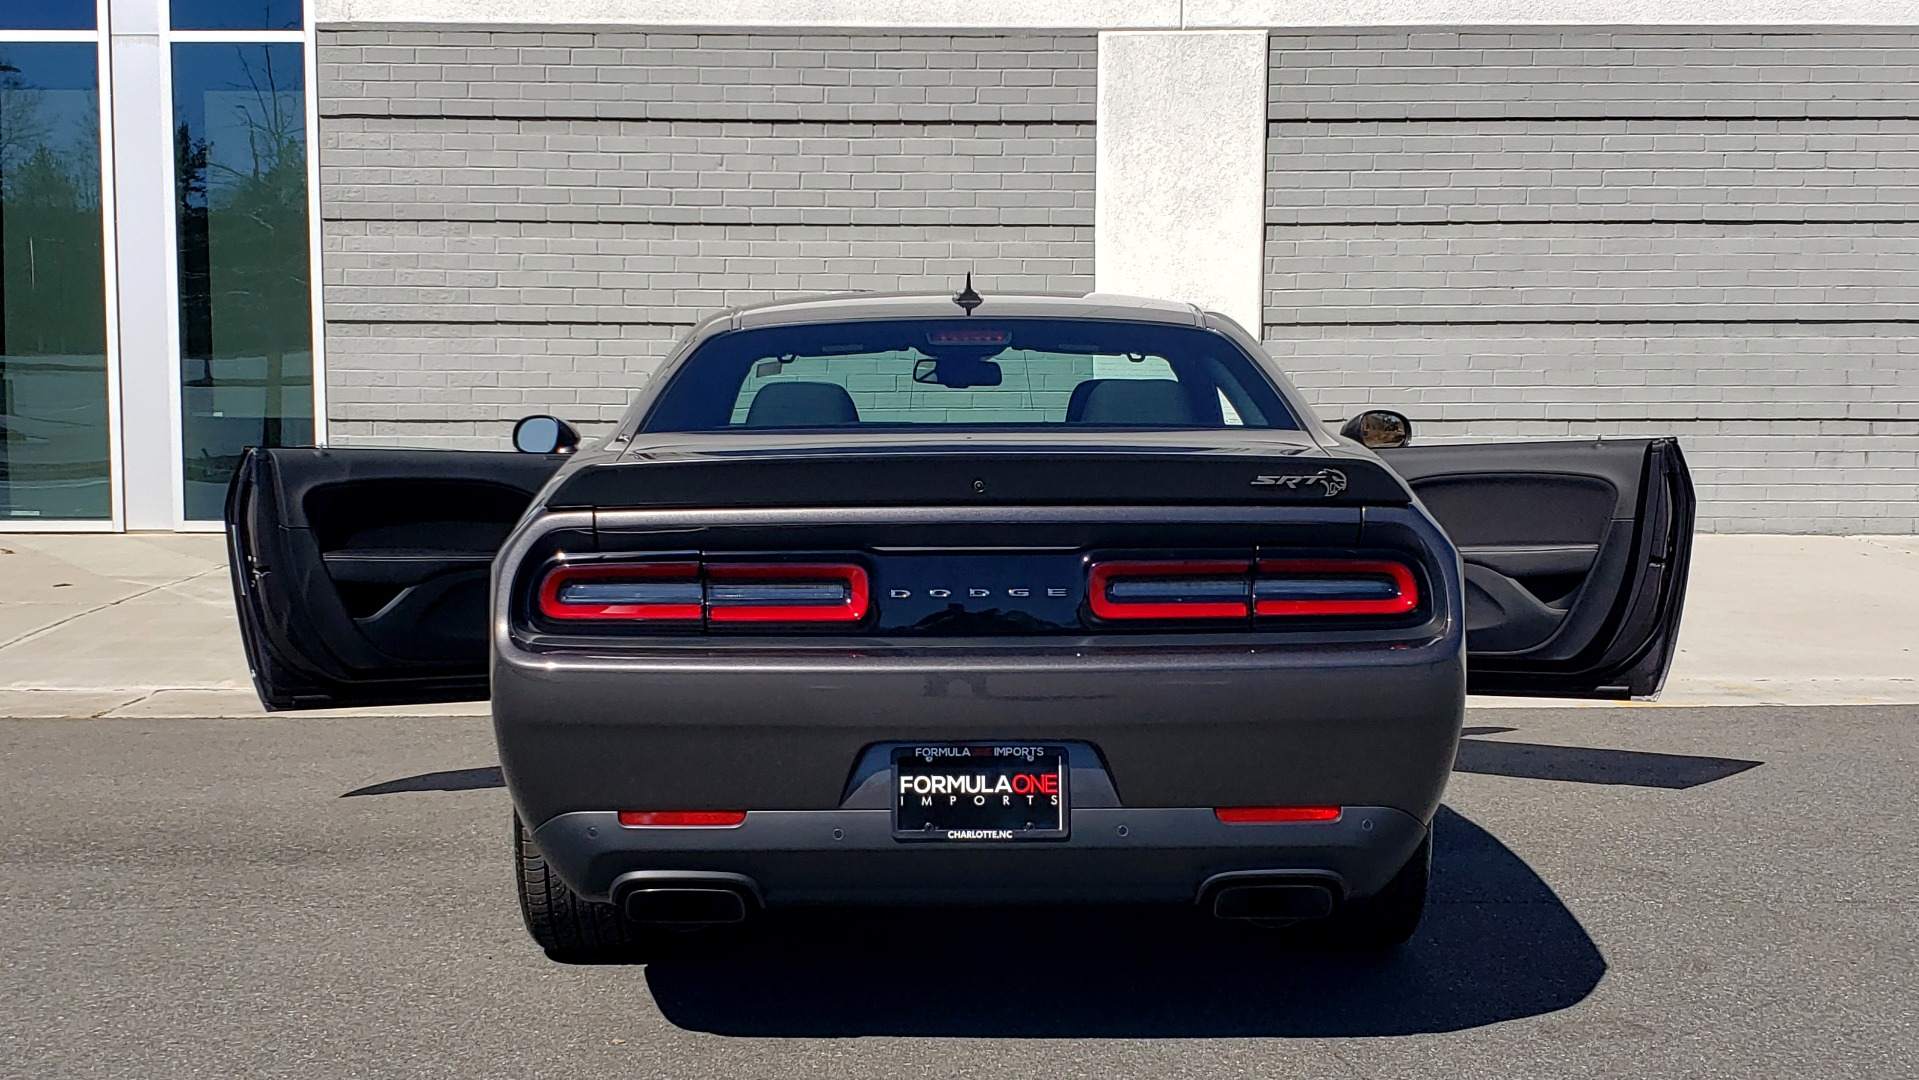 Used 2020 Dodge CHALLENGER SRT HELLCAT (717HP) / NAV / AUTO / CLOTH / REARVIEW / LOW MILES for sale $64,999 at Formula Imports in Charlotte NC 28227 31